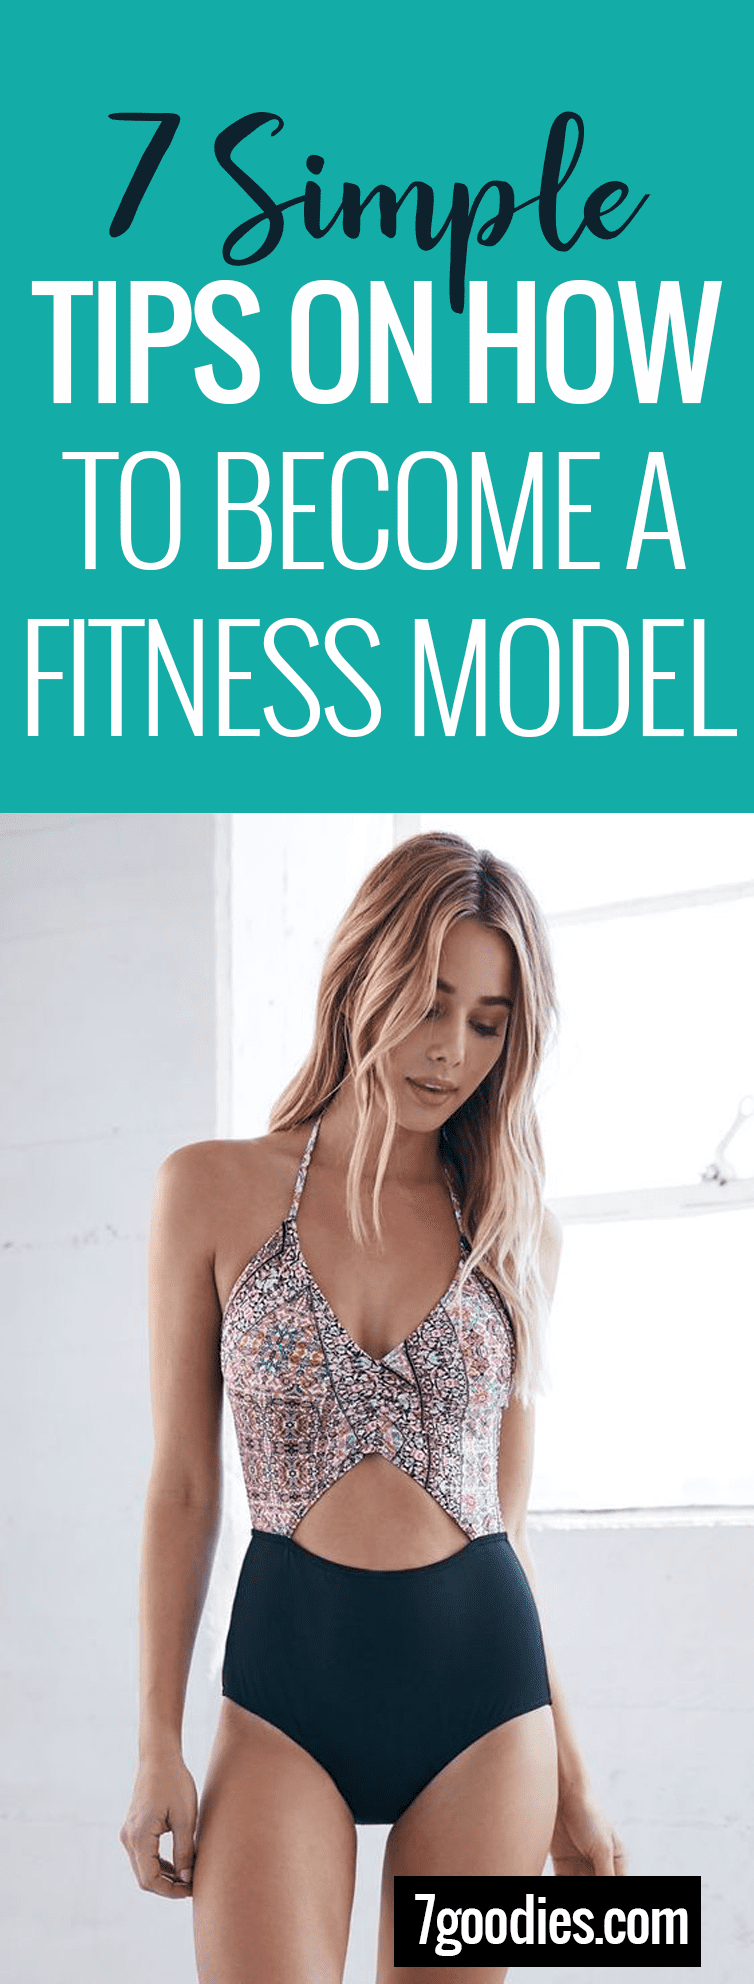 7 Simple Tips On How To Become A Fitness Model 7goodies Become A Fitness Model Bikini Fitness Models Fitness Model Diet